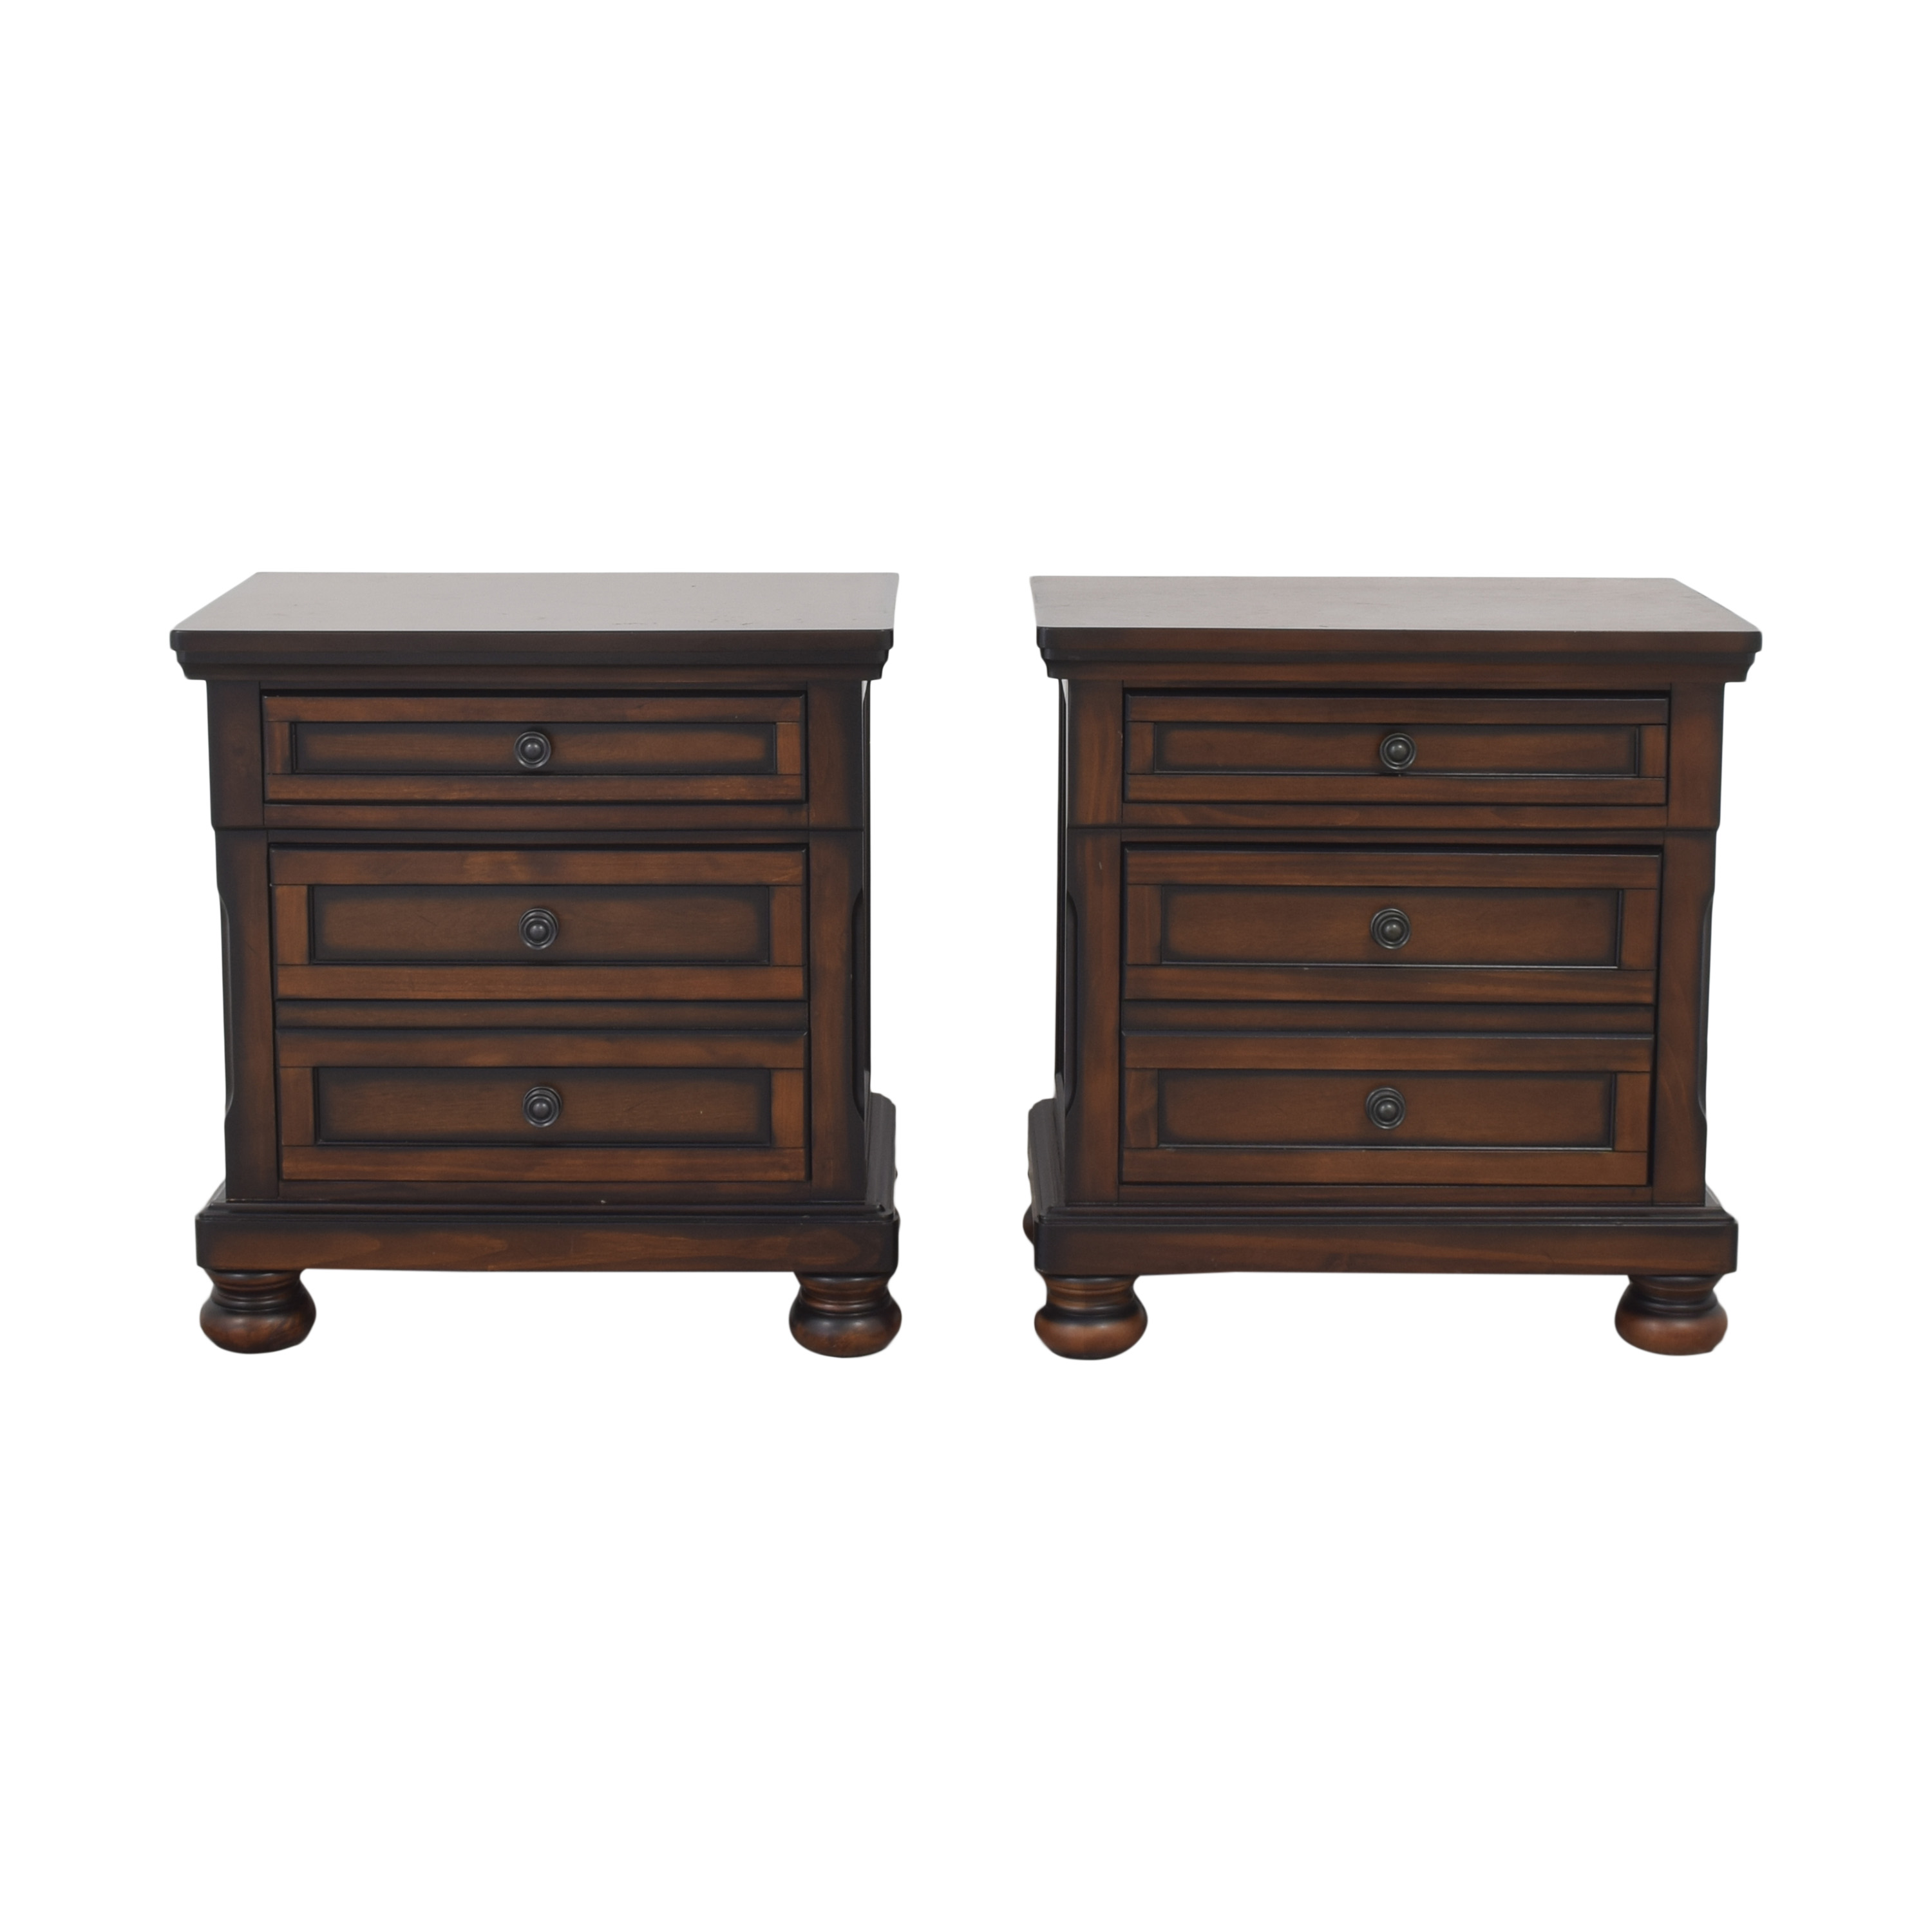 Raymour & Flanigan Raymour & Flanigan Donegan Nightstands Tables